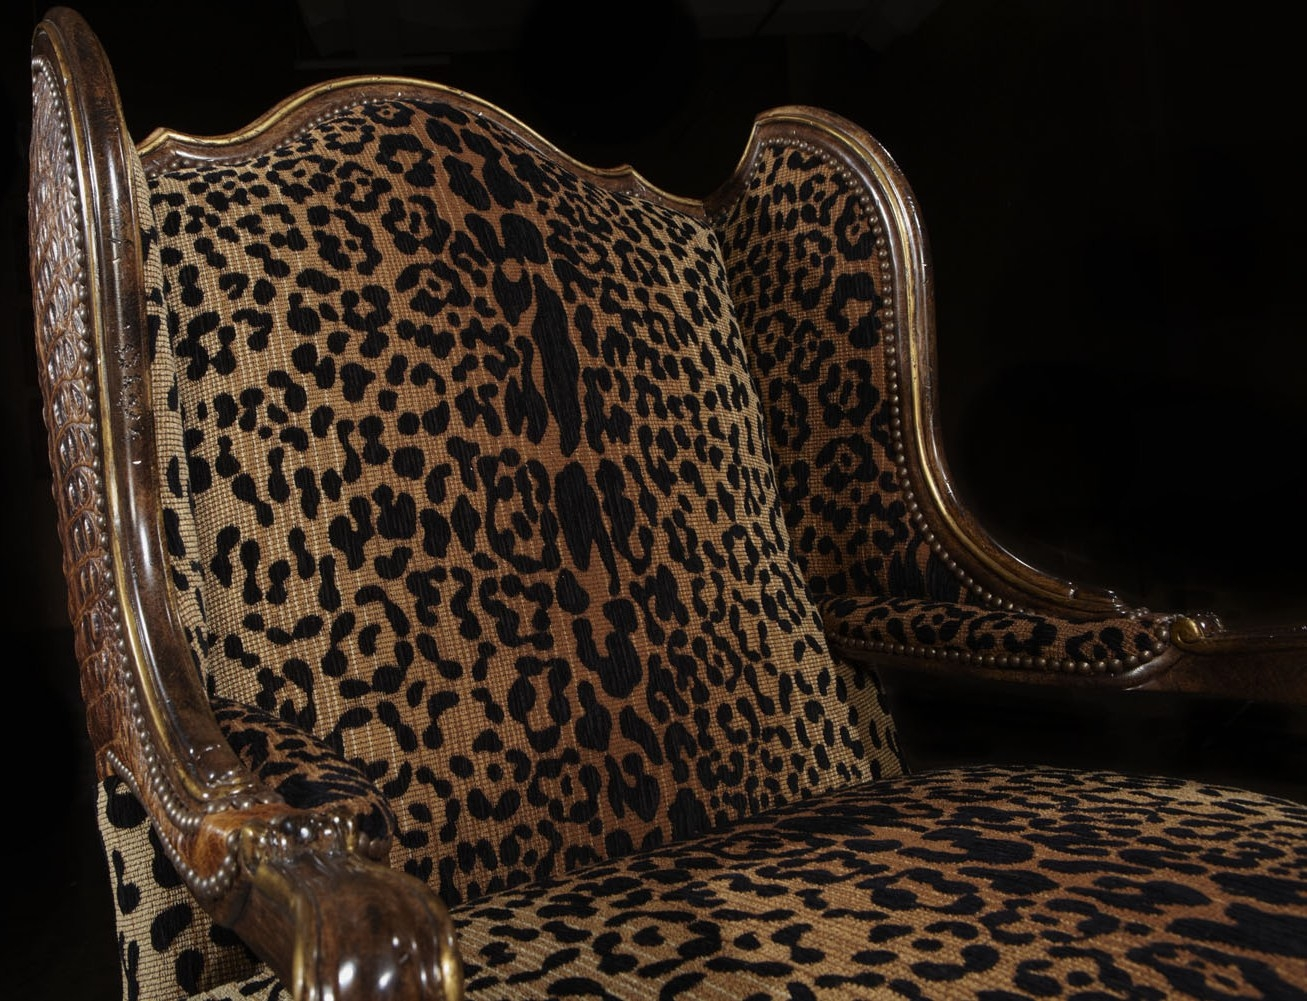 high end upholstered furniture. Luxury Leather \u0026 Upholstered Furniture Love My Leopard Chair High End E